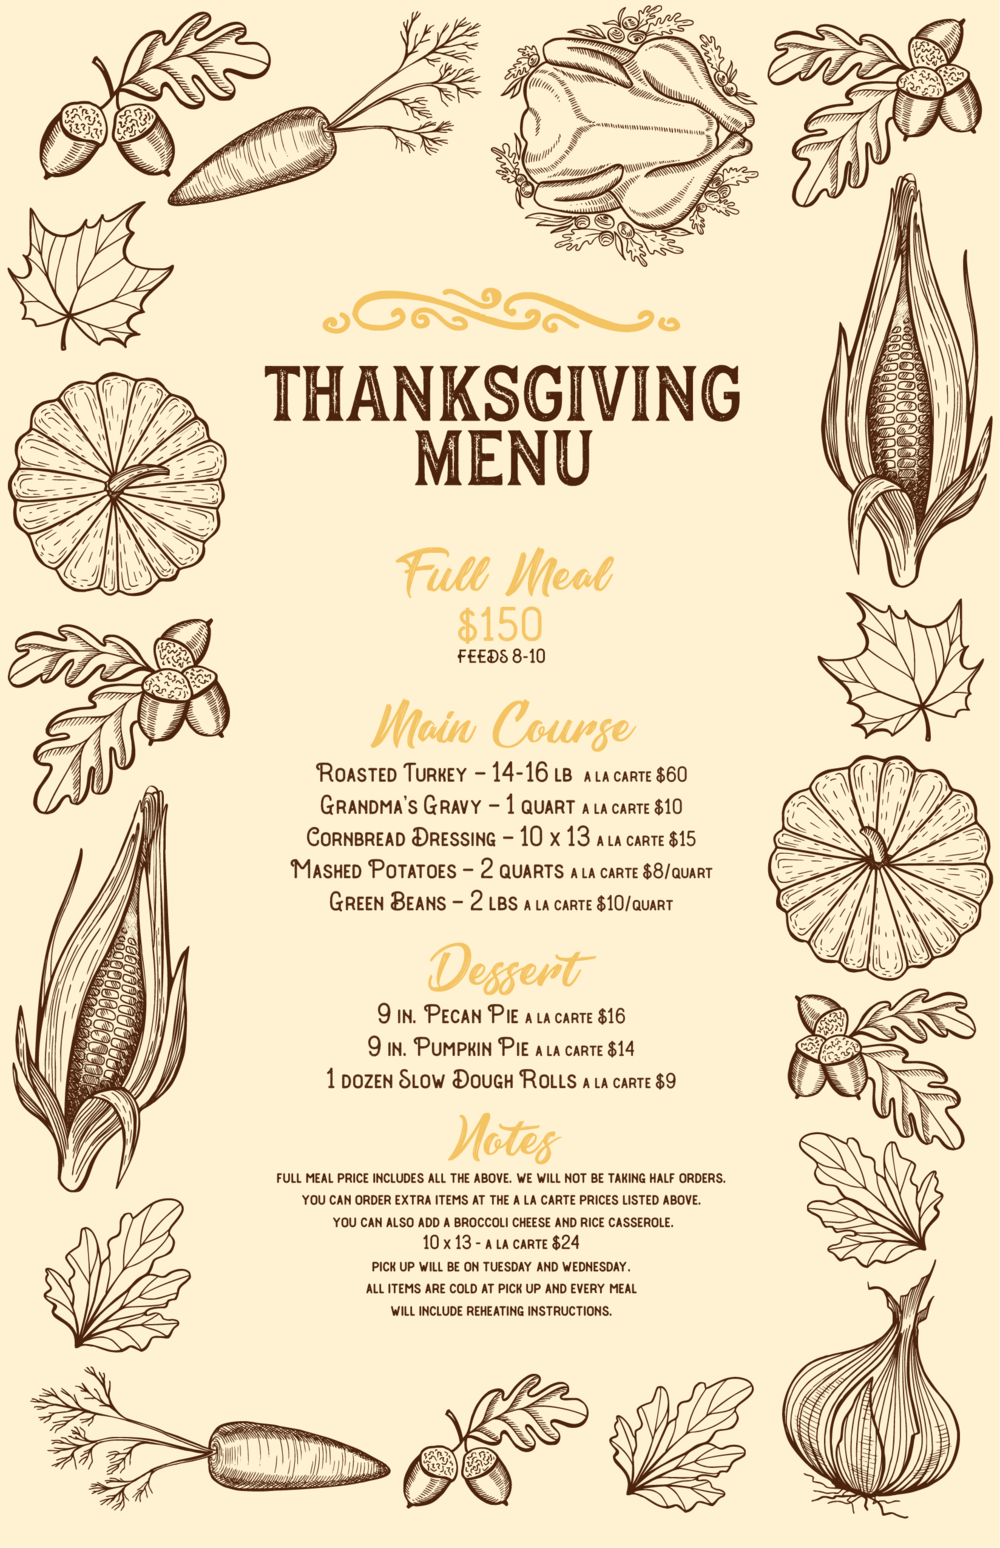 Thanksgiving Menu 2018.png